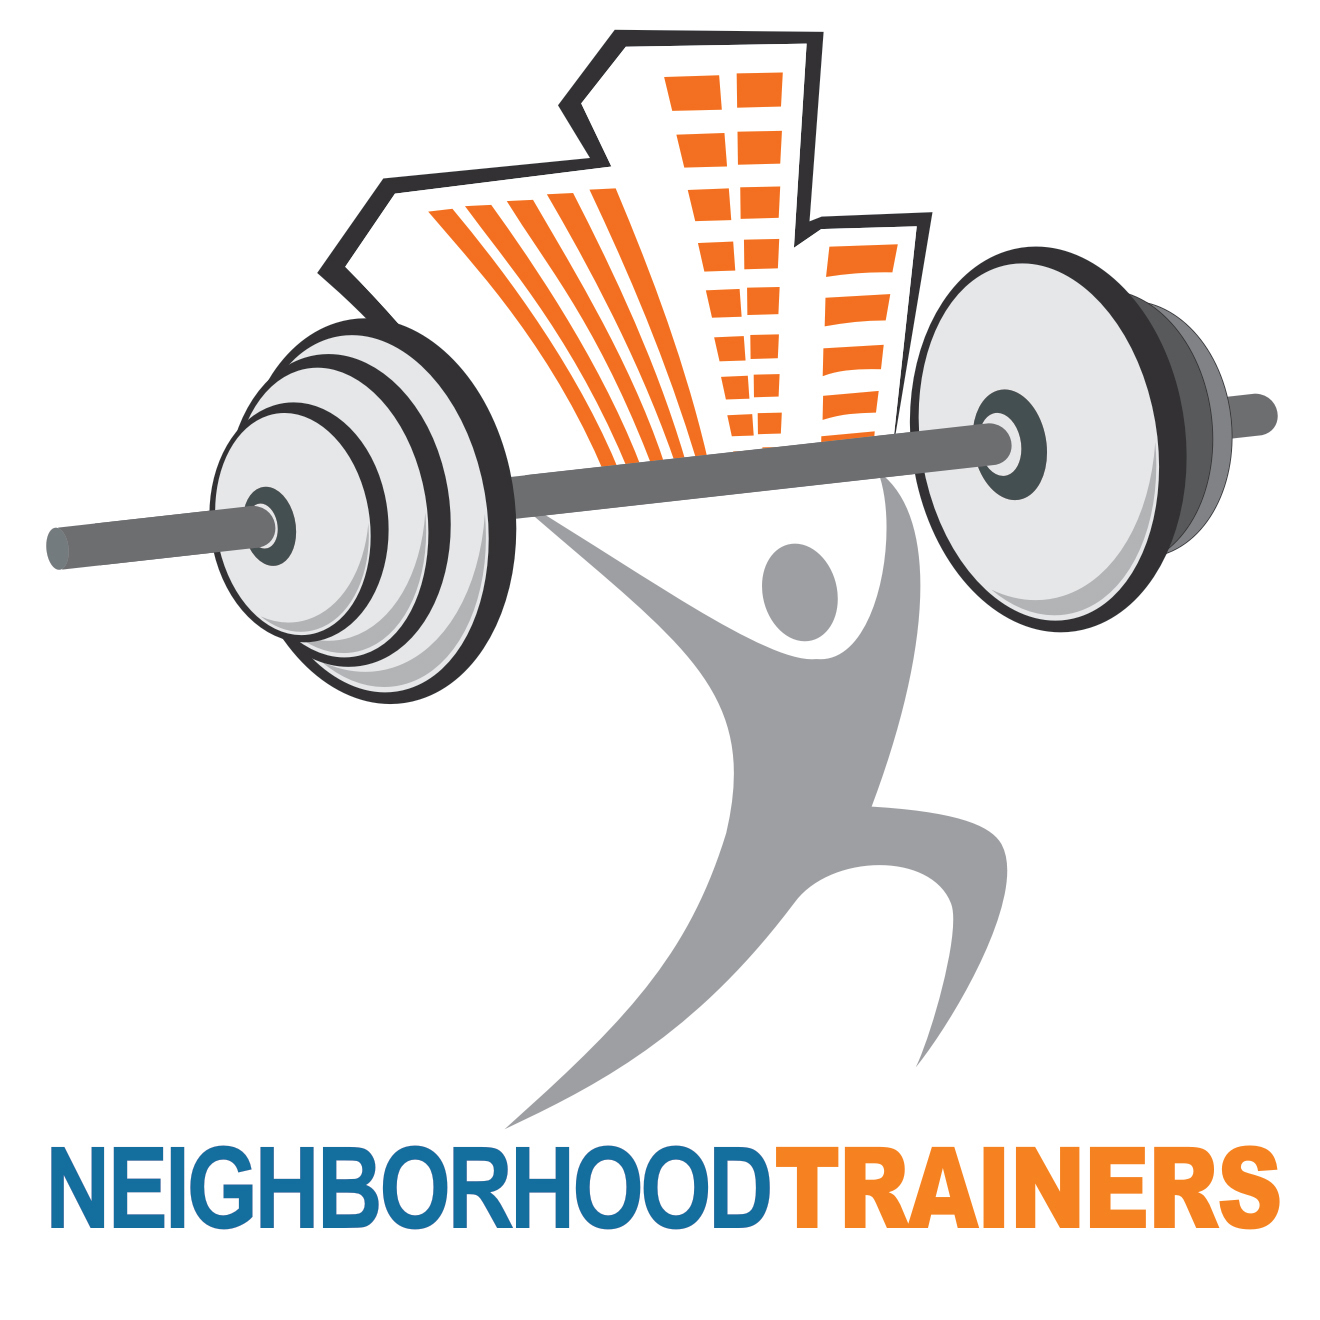 Neighborhood Trainers - ad image